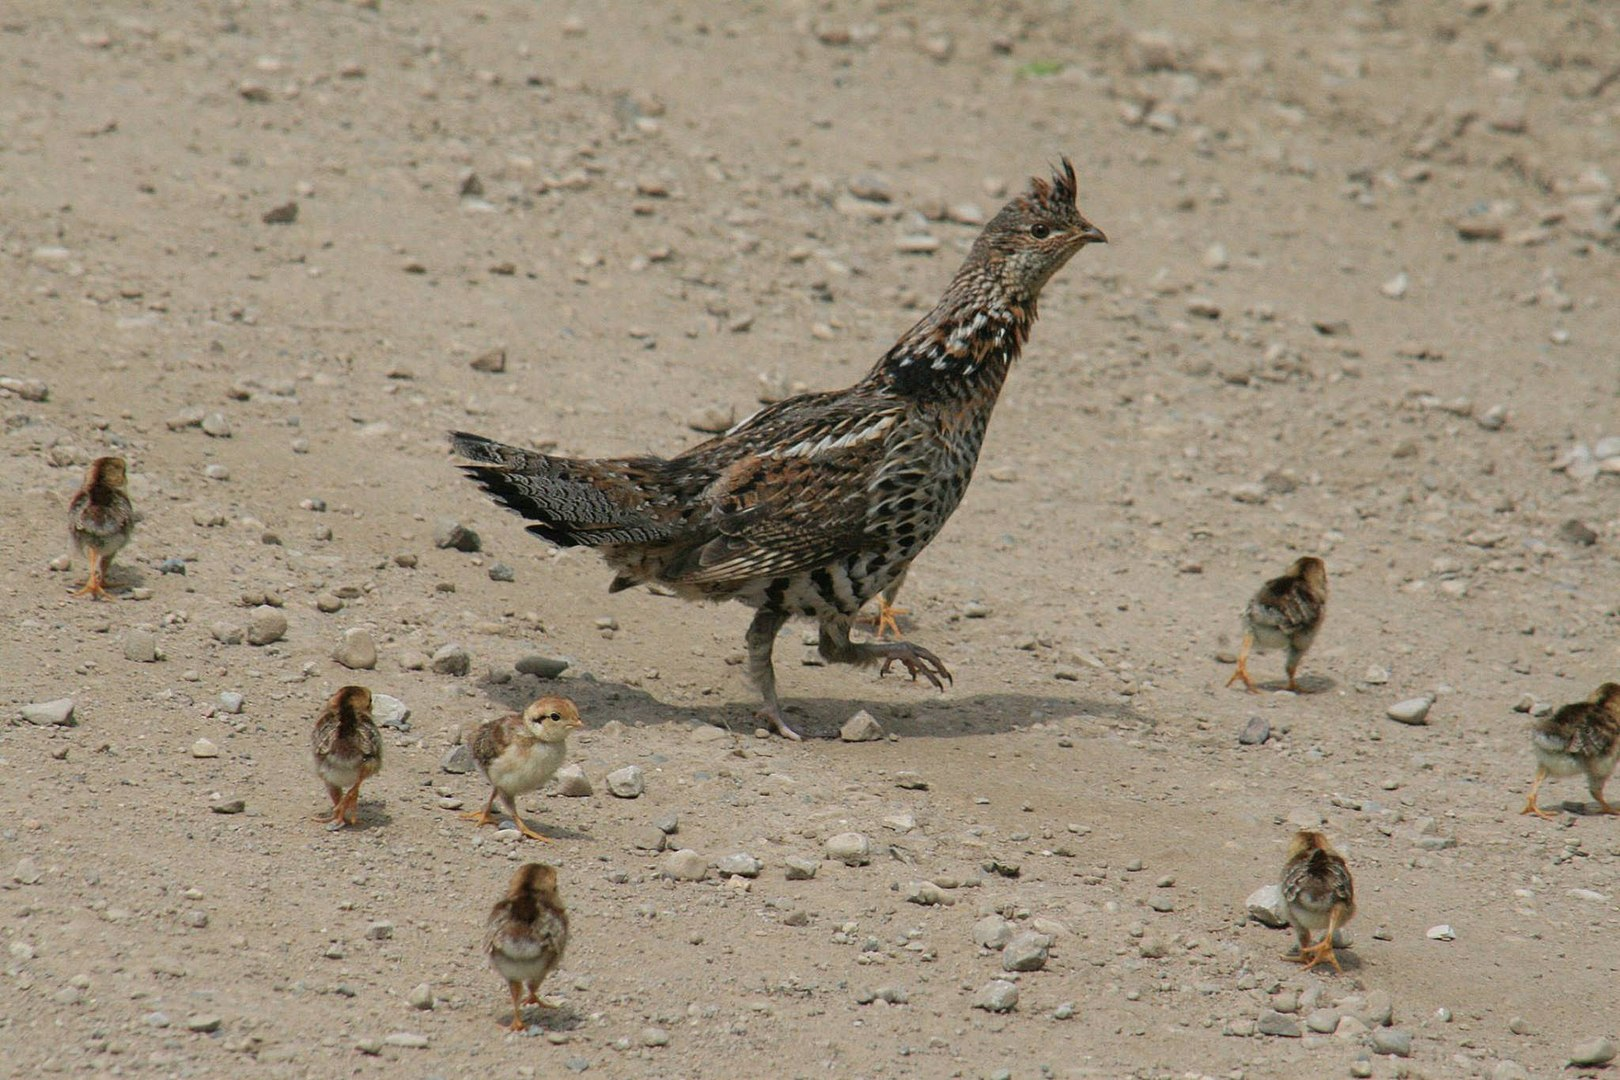 1620px-Ruffed_Grouse_with_Chicks_(18833287265).jpg